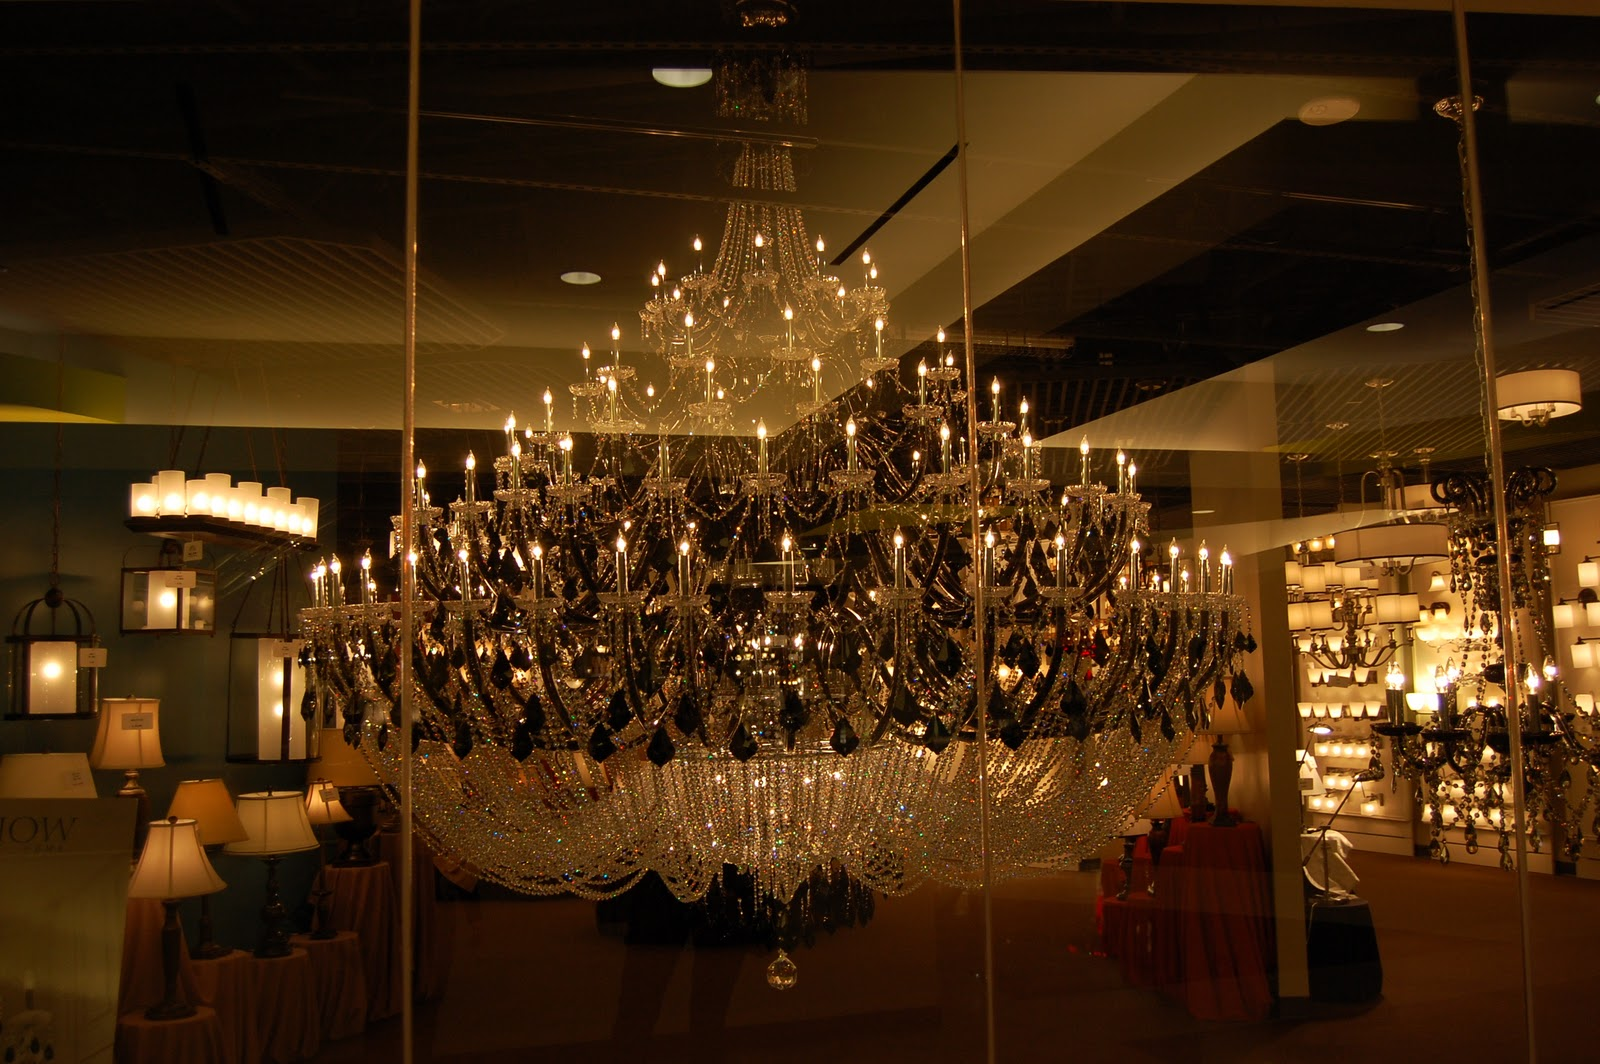 Uncategorized archives page 5 of 19 pamela sandall design this was the biggest chandelier at the show aloadofball Gallery